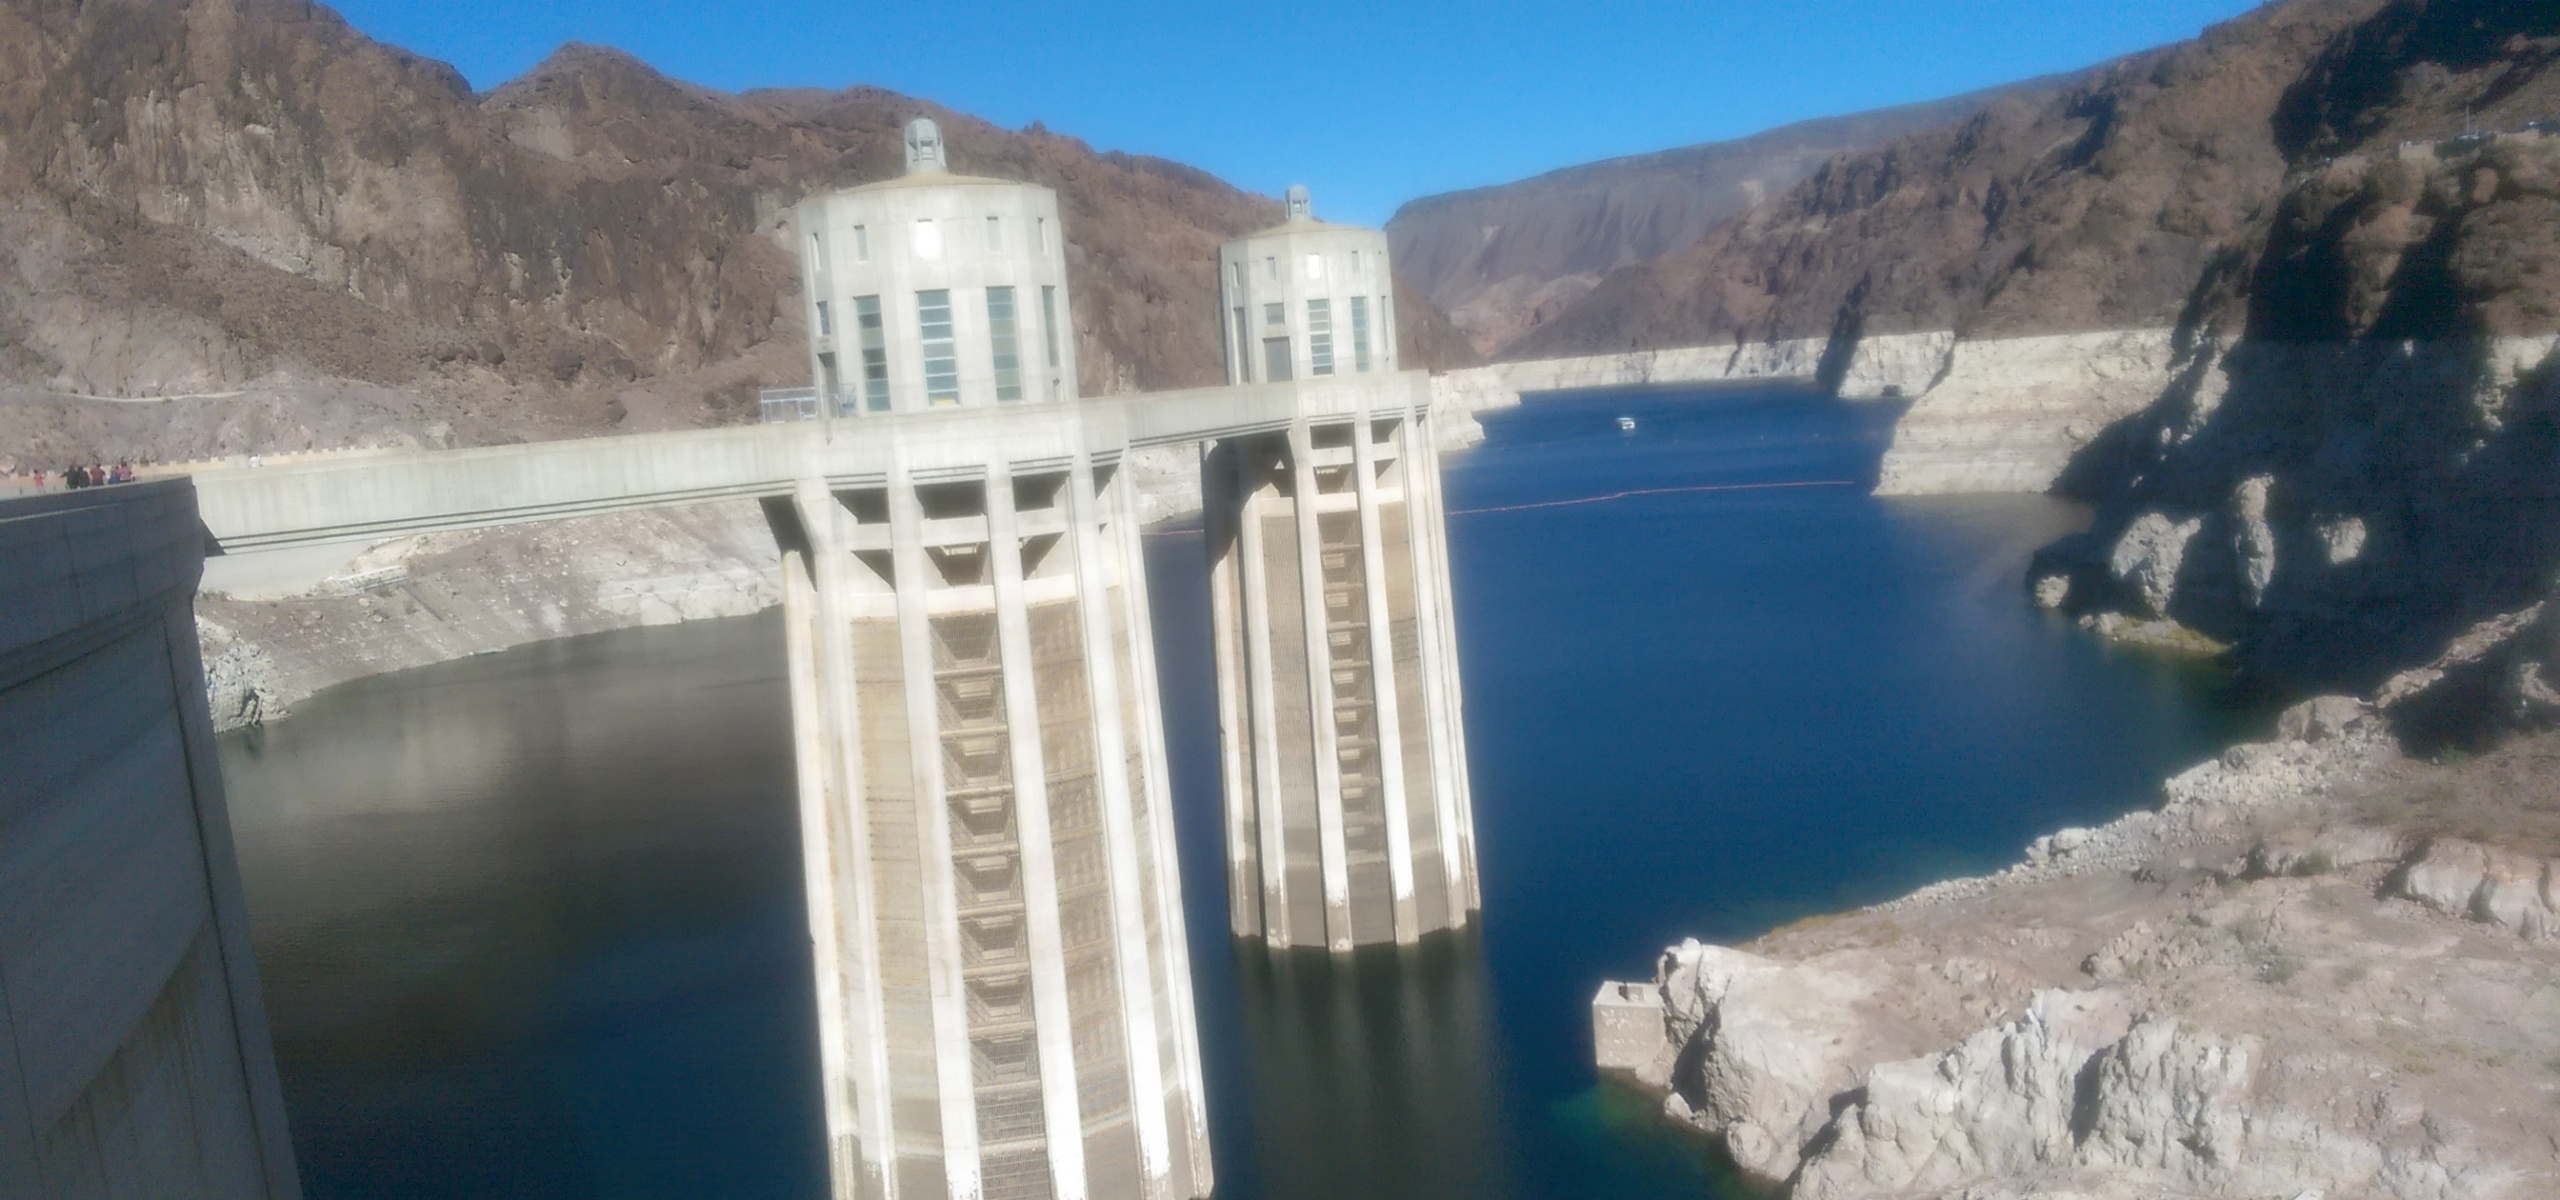 Time Travel: Visiting Hoover Dam | Broadview Collaborative, Inc